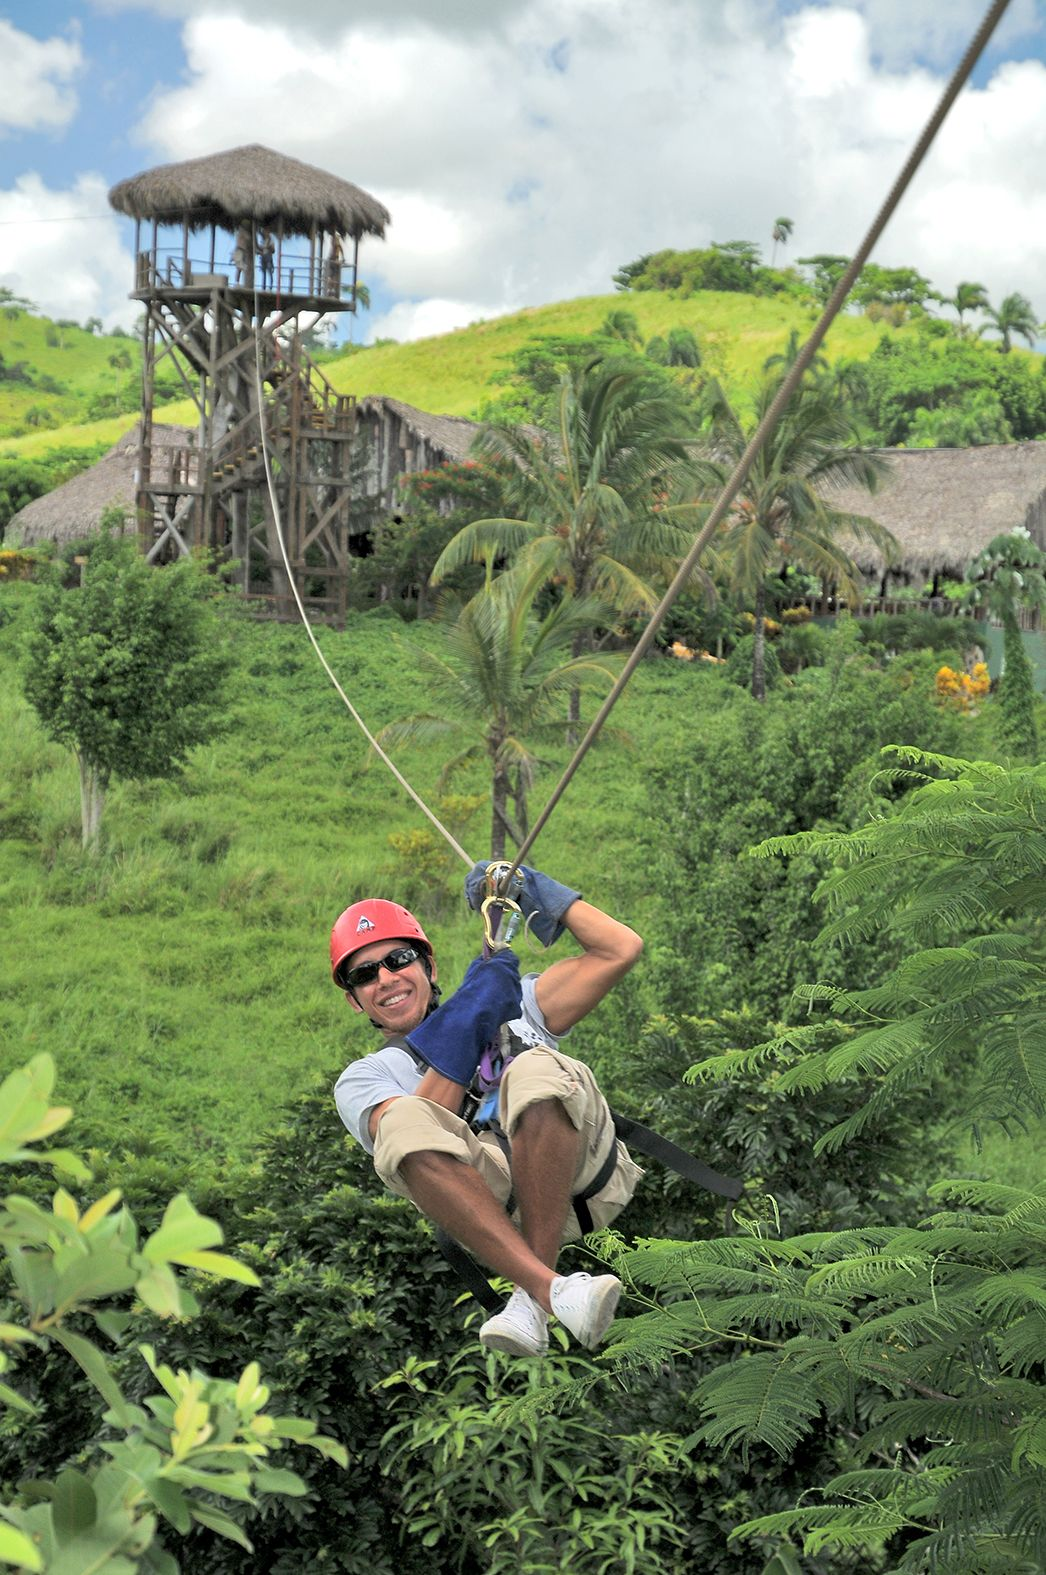 Zip Line Adventures Excursion Punta Cana 12 Lines 16 Platforms Bavaro Dr Punta Cana Excursions Punta Cana Vacation Time